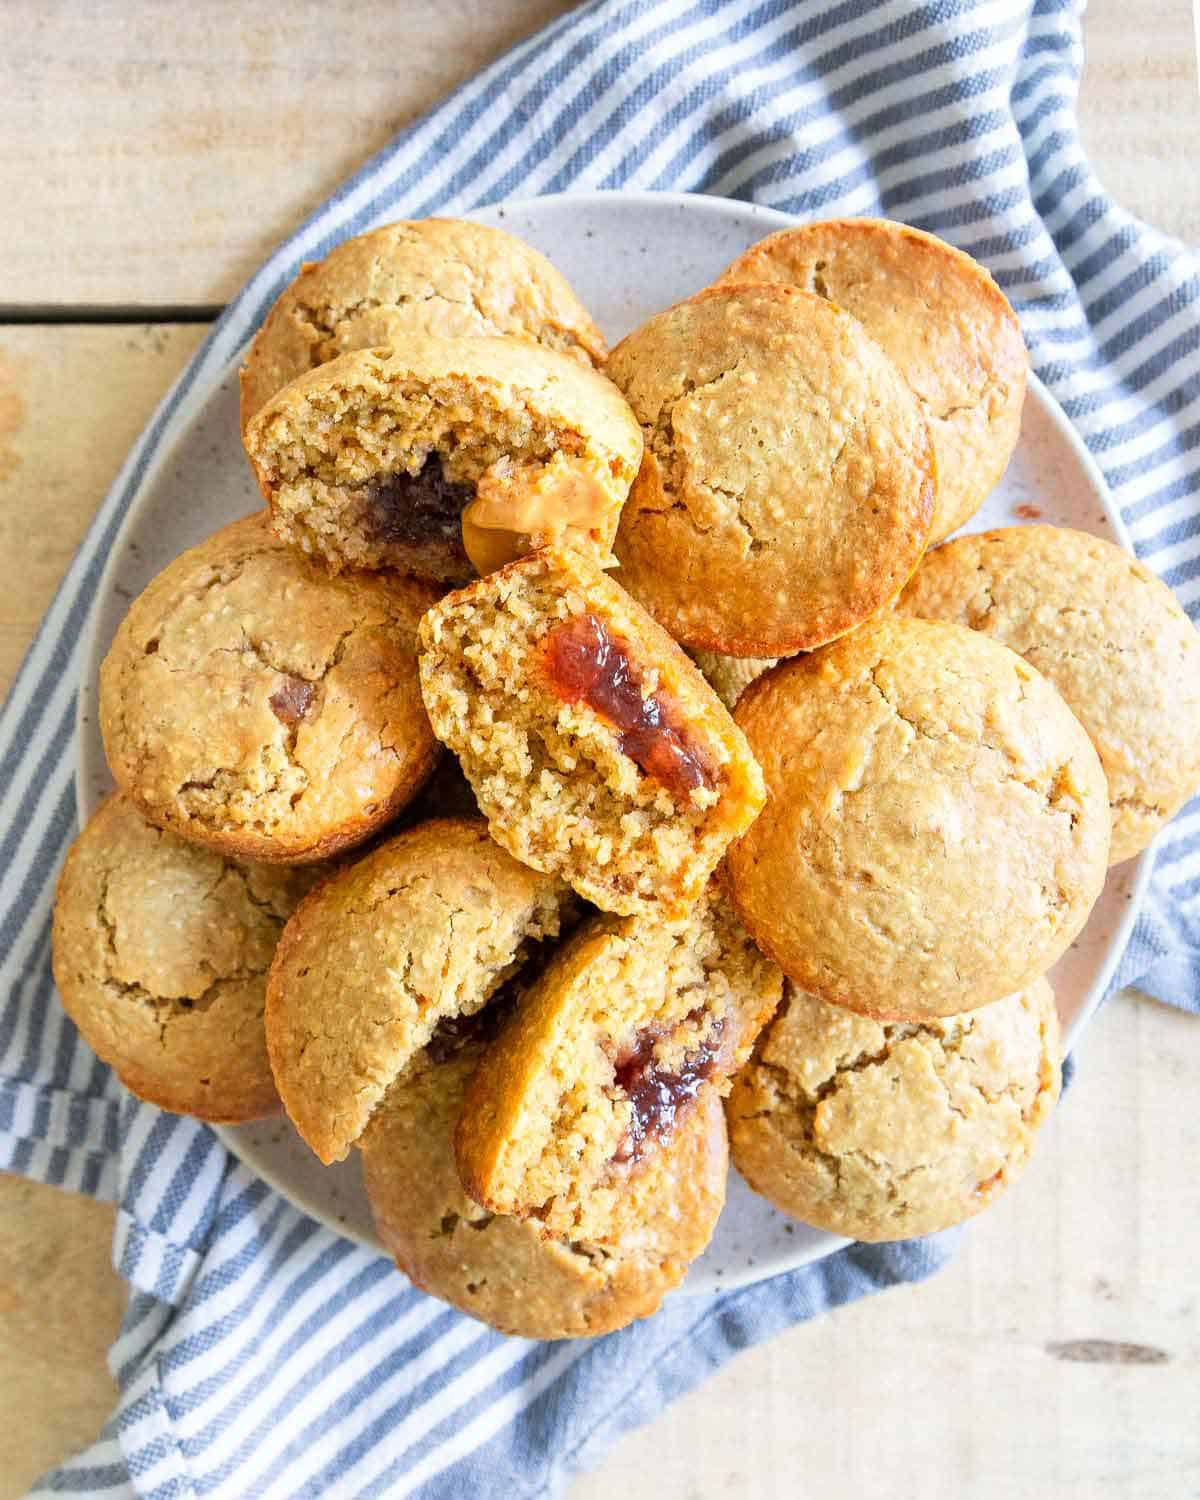 An easy recipe for peanut butter and jelly muffins to snack on all week long.